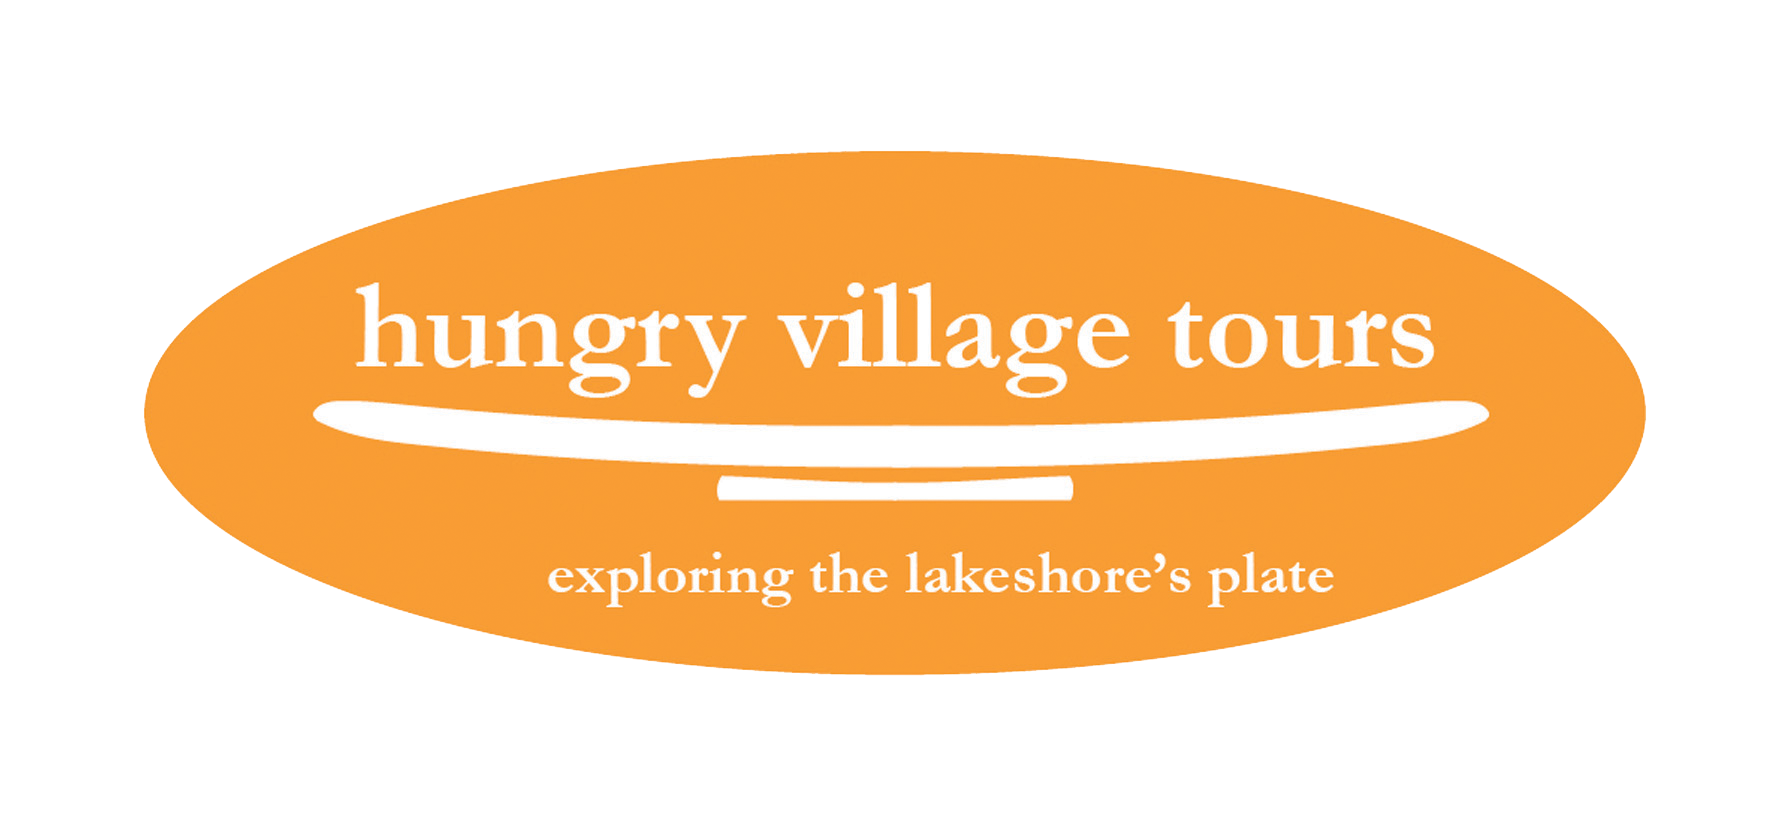 Exploring The Lakeshore's Plate